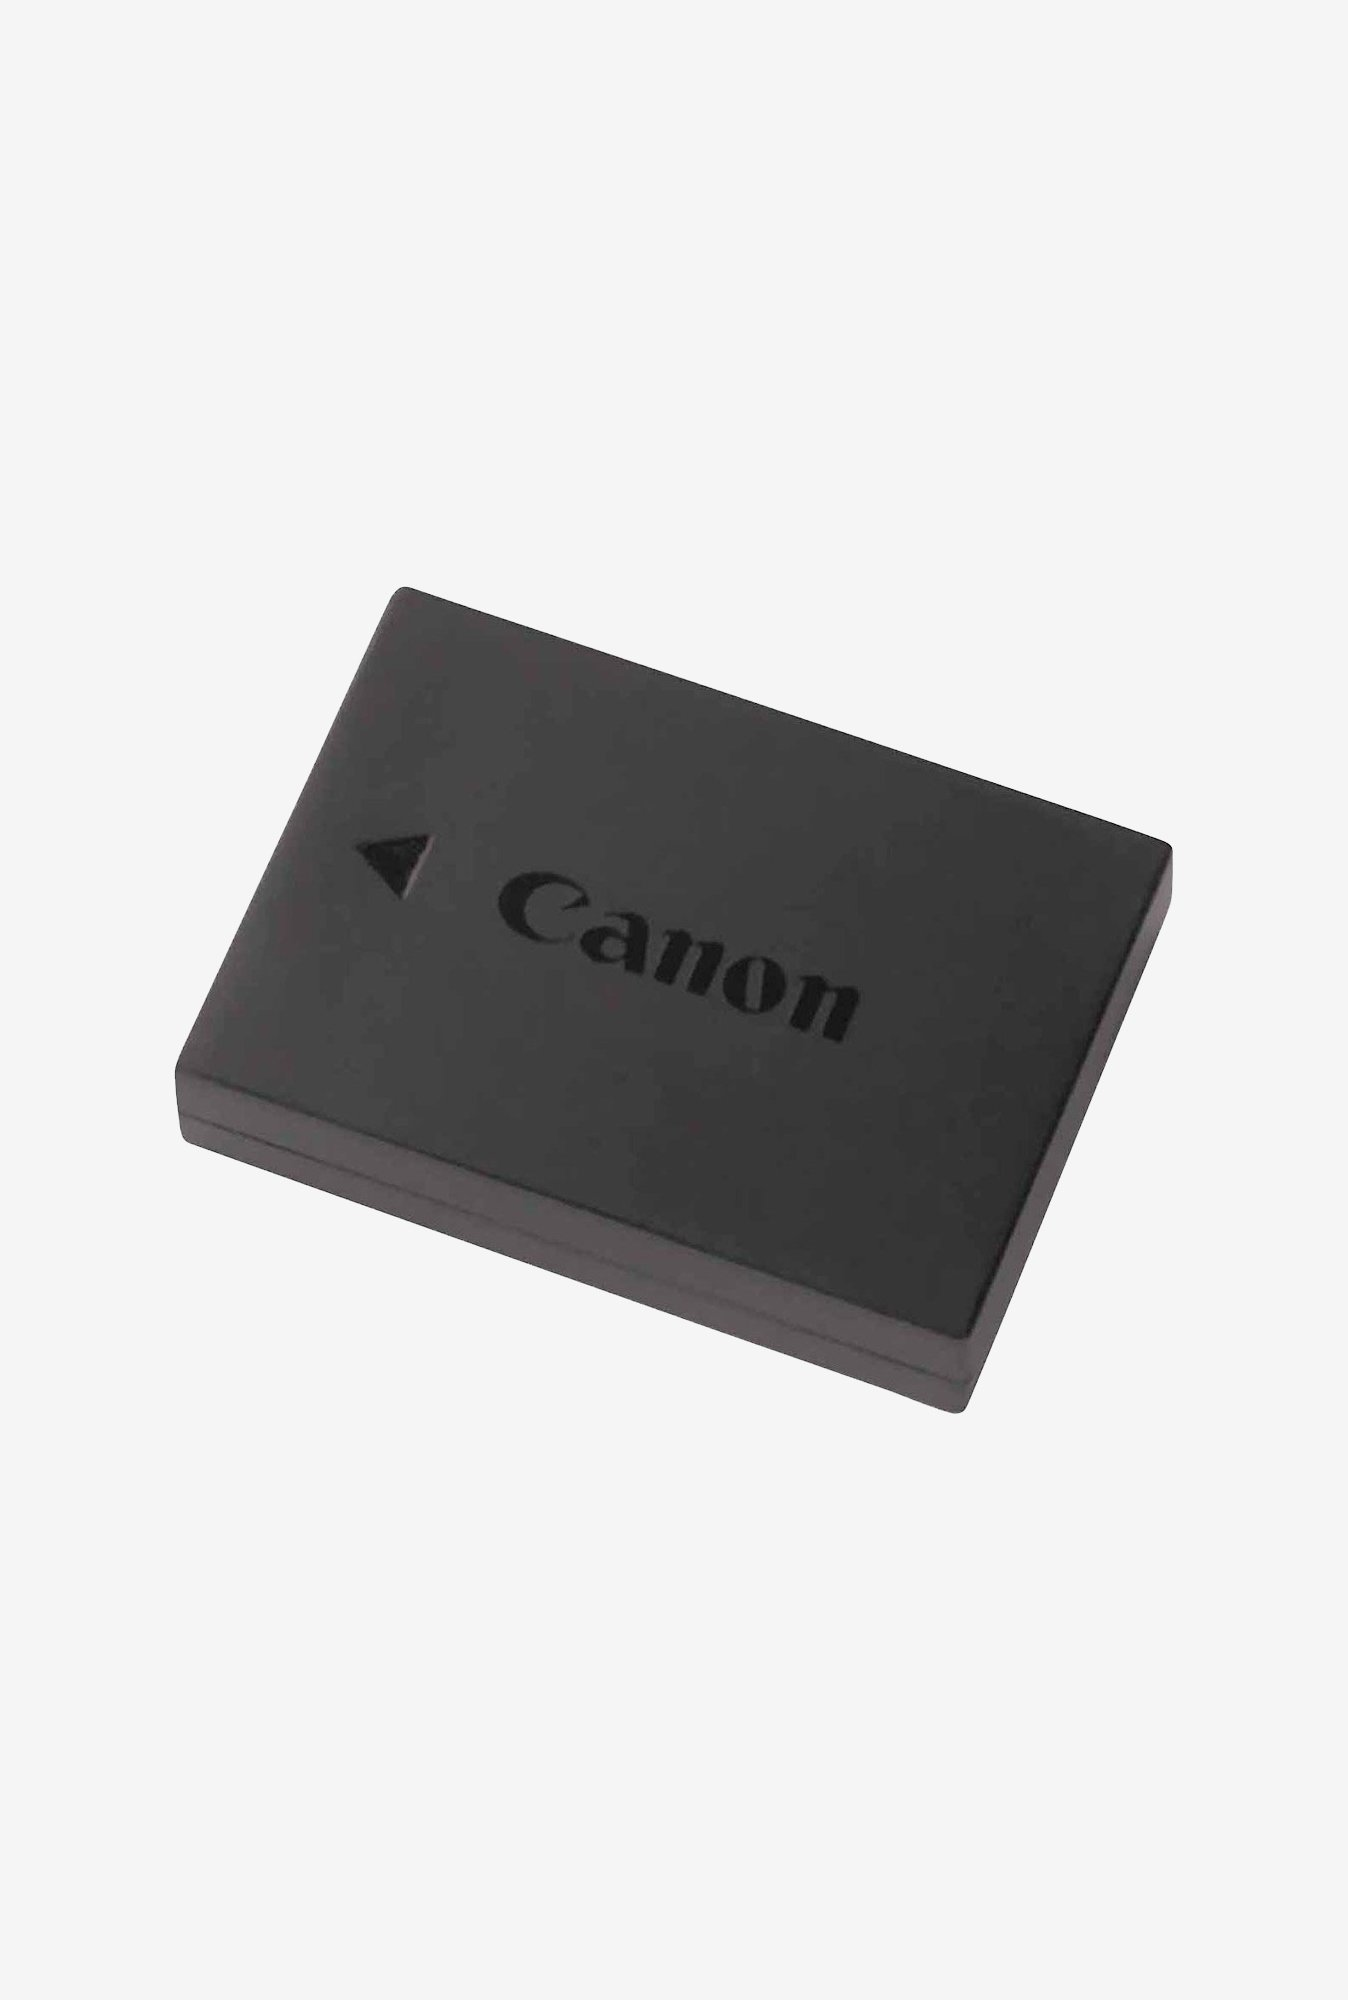 Canon LP-E10 Lithium-Ion Battery Black